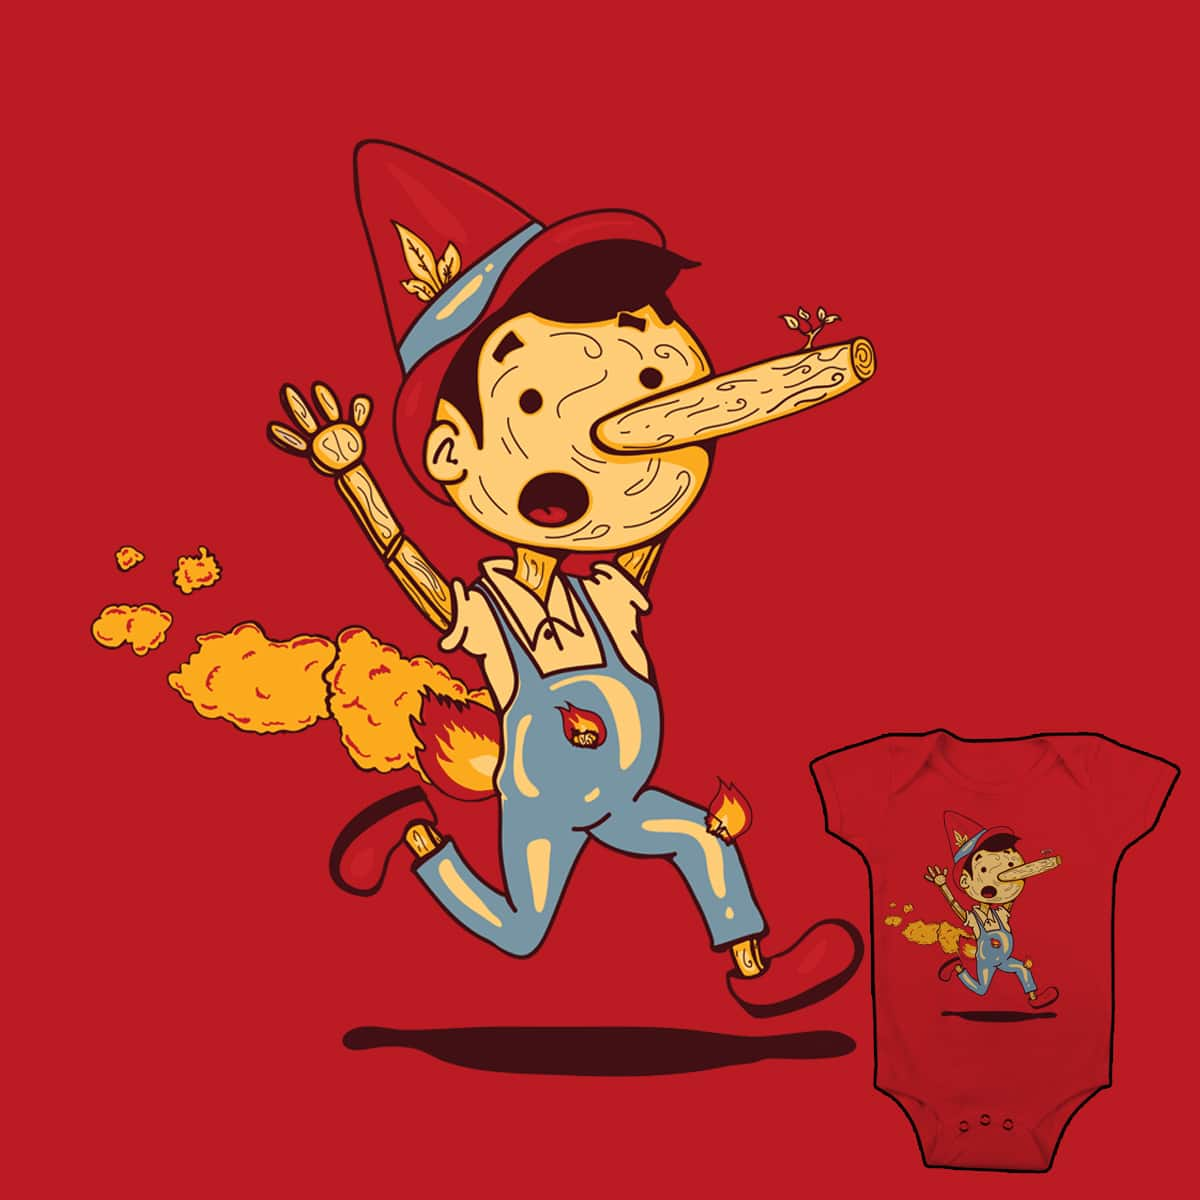 Liar! Liar! Pants on Fire! by be Ray on Threadless